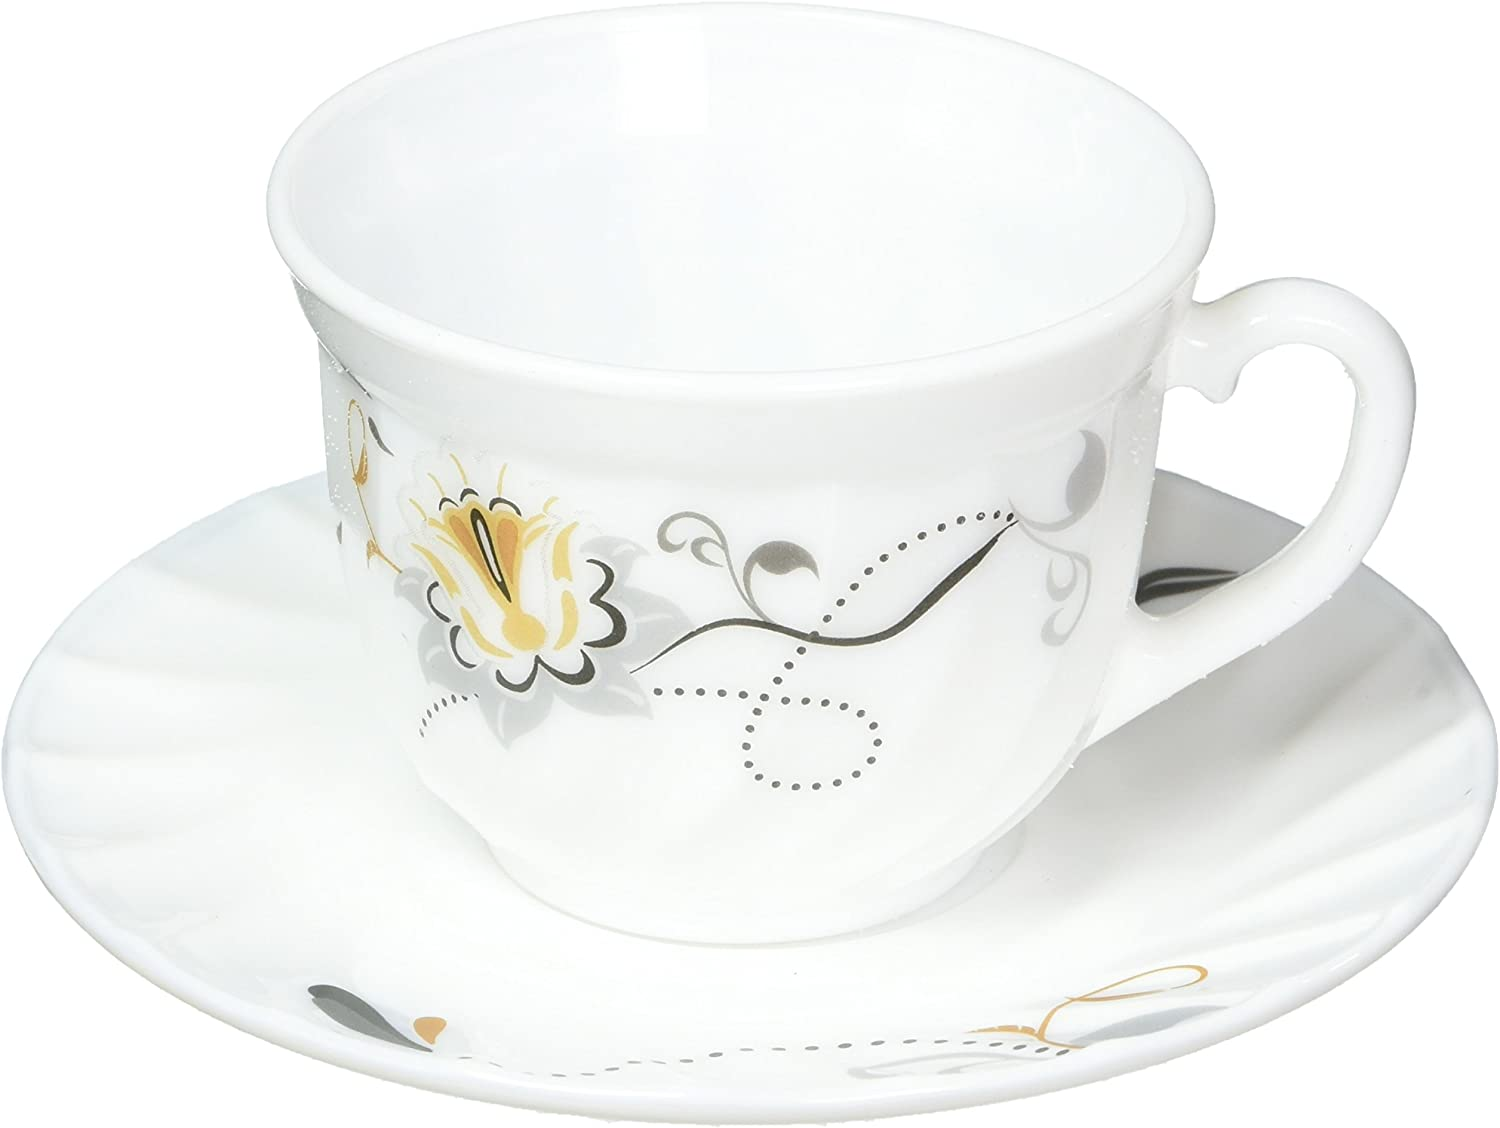 BA200-190  Uniware High Quality  Opal Glassware Cups and Saucer,Set of 12 Pcs